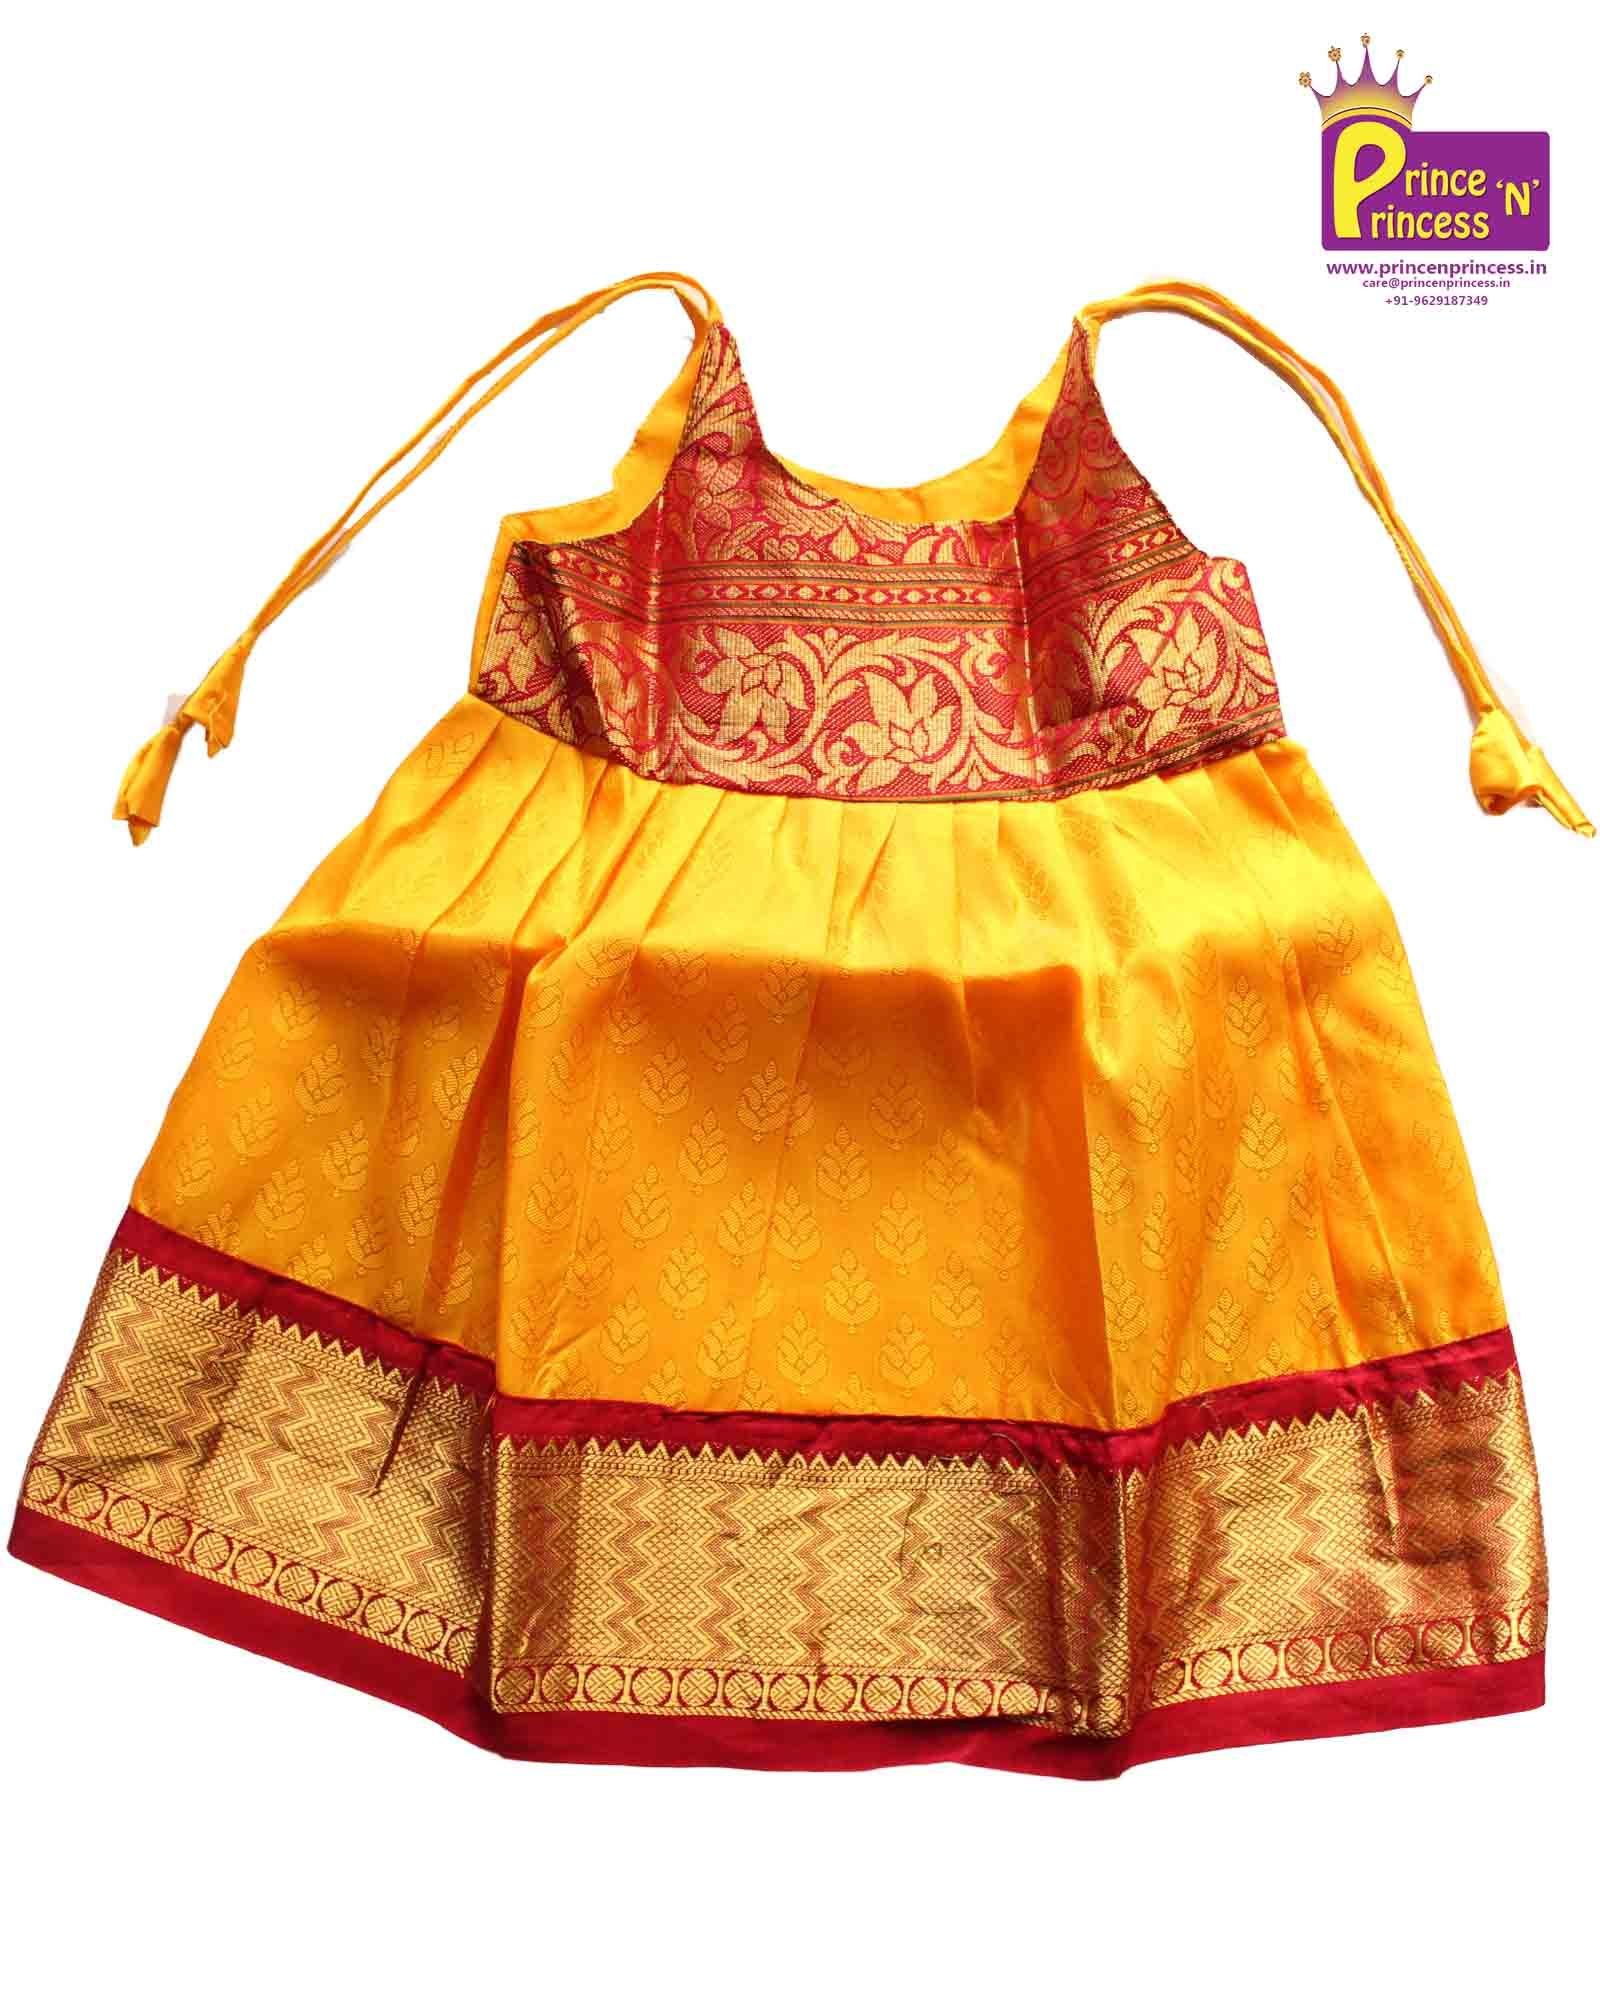 2d92e8e999cc1d New born Pure Silk frock ..  pattu  langa  baby  girl  online  frock   naming  ceremony  pavadai  pavdai  traditional  ethnic